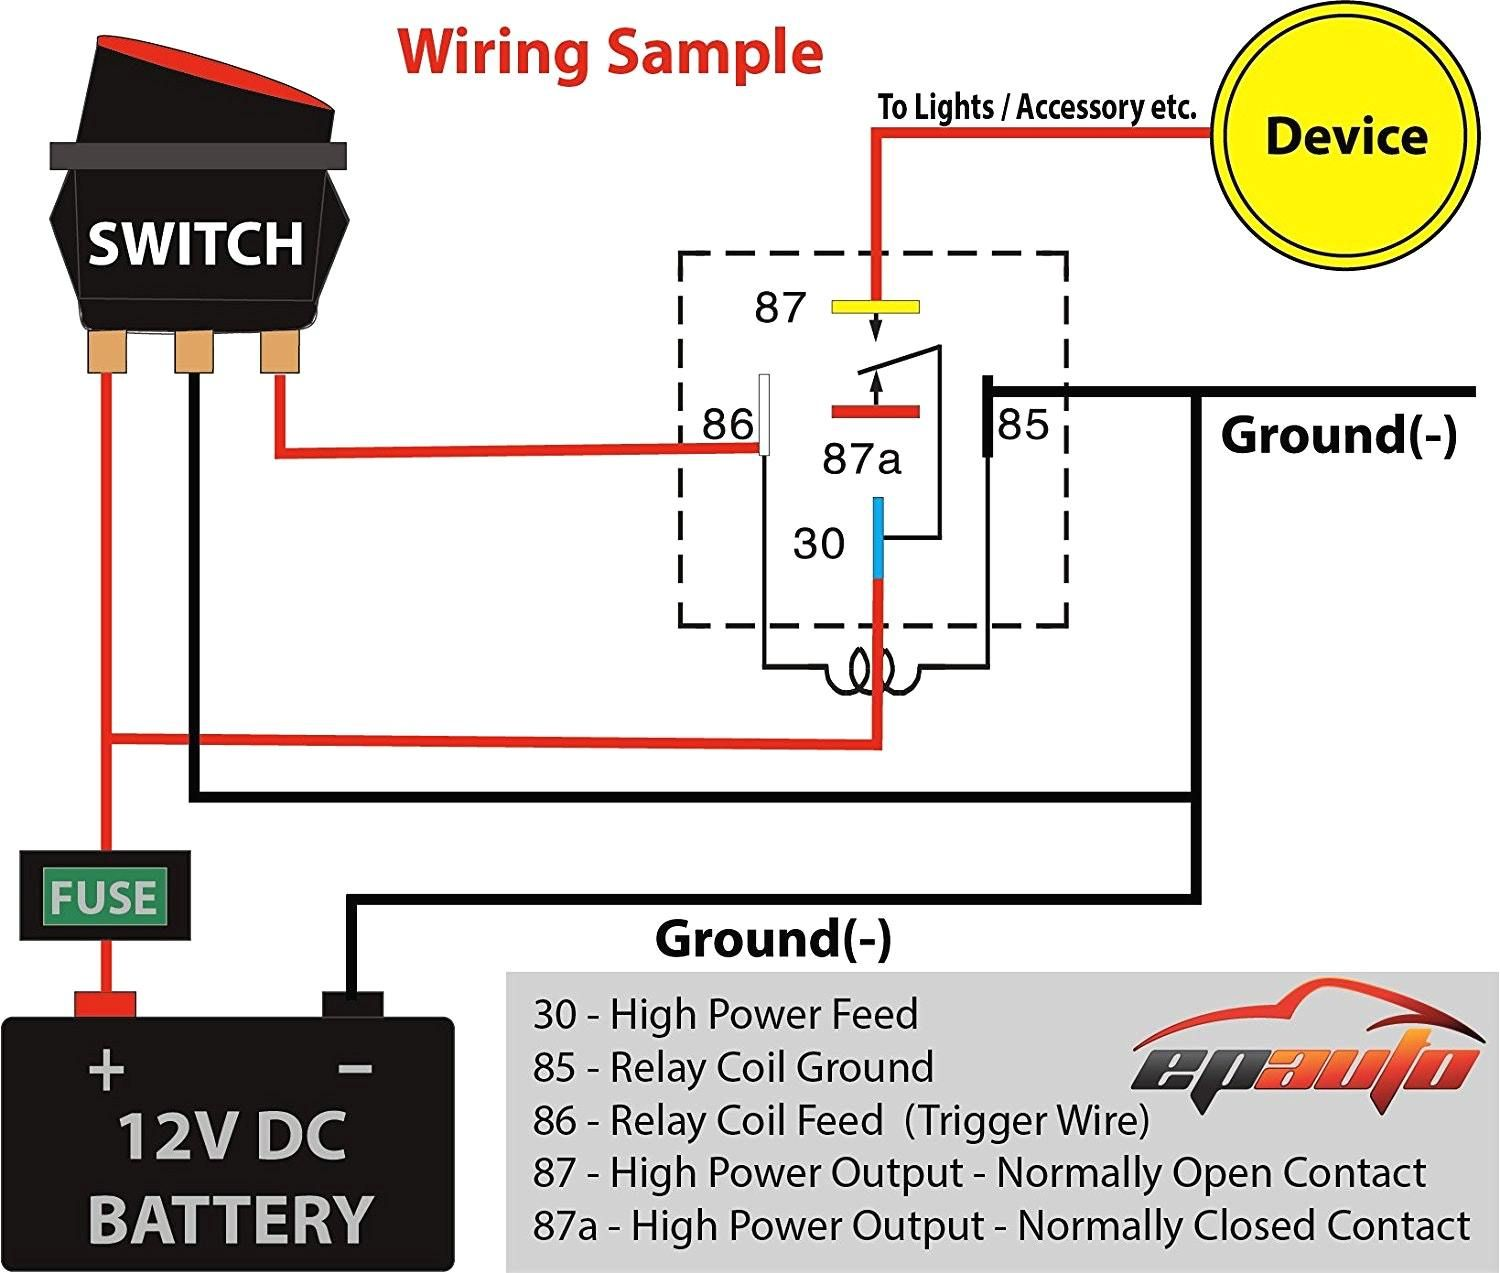 medium resolution of bosch relay wiring diagram forn automotivens gtsparkplugs and pin prong with in for horn wires electrical circuit sample lines